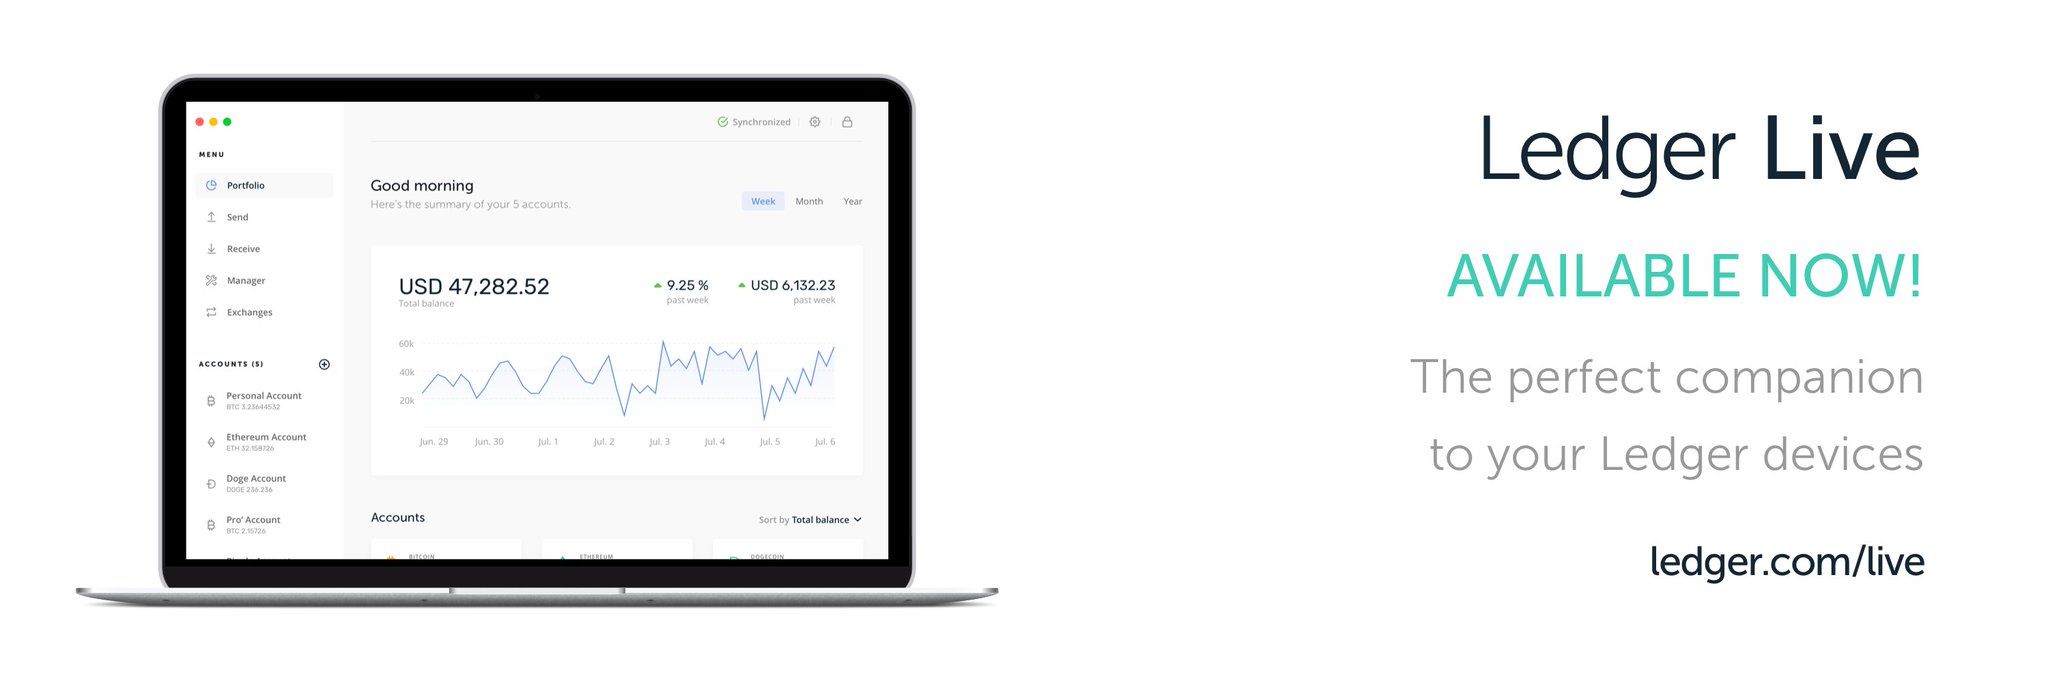 Ledger launches Ledger Live, the all-in-one companion app to your Ledger device